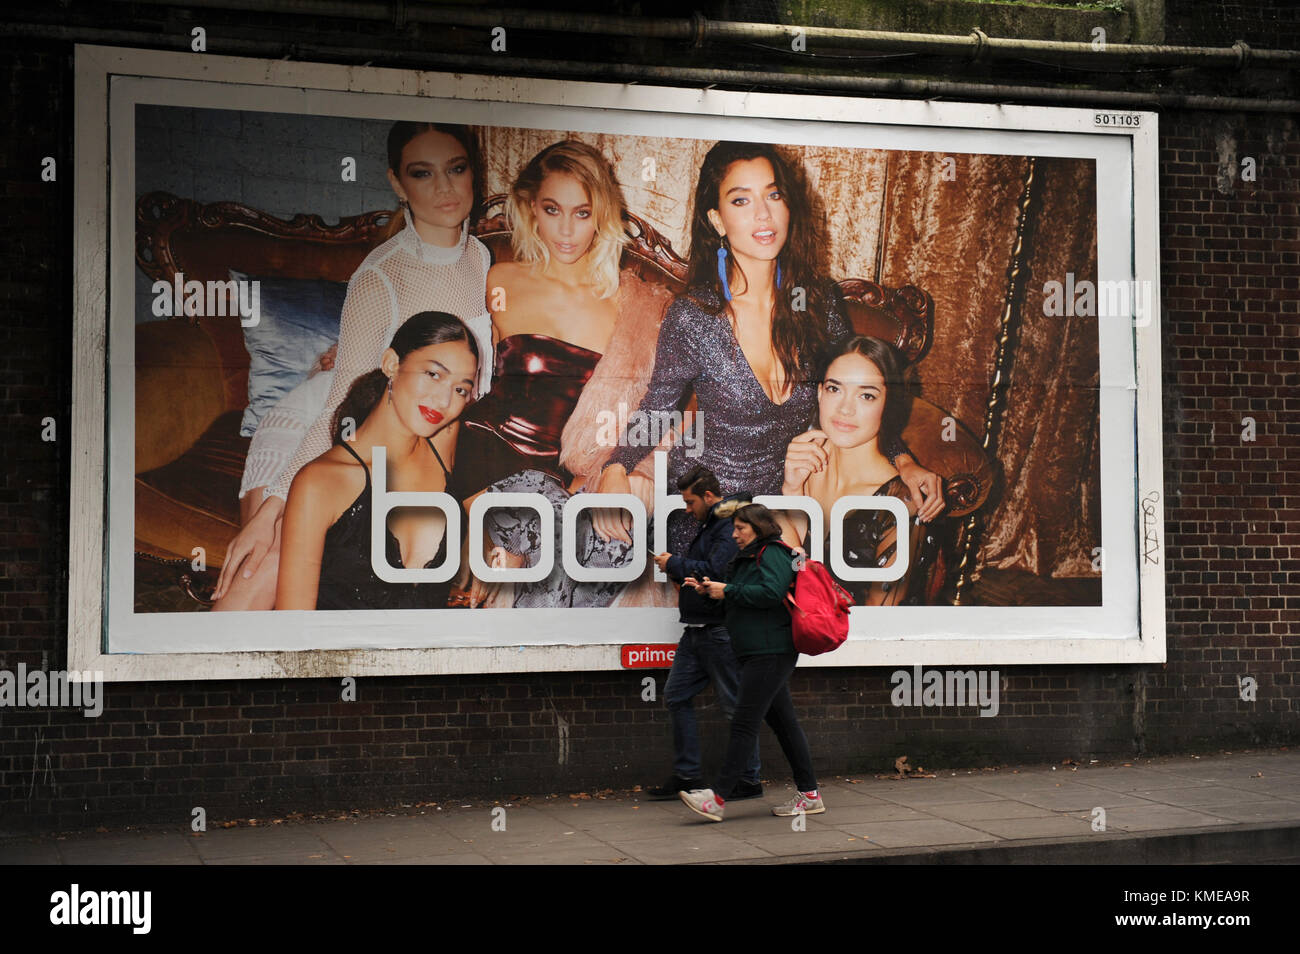 687c8bdd677 An advertising poster for boohoo the online shop in East Finchley ...